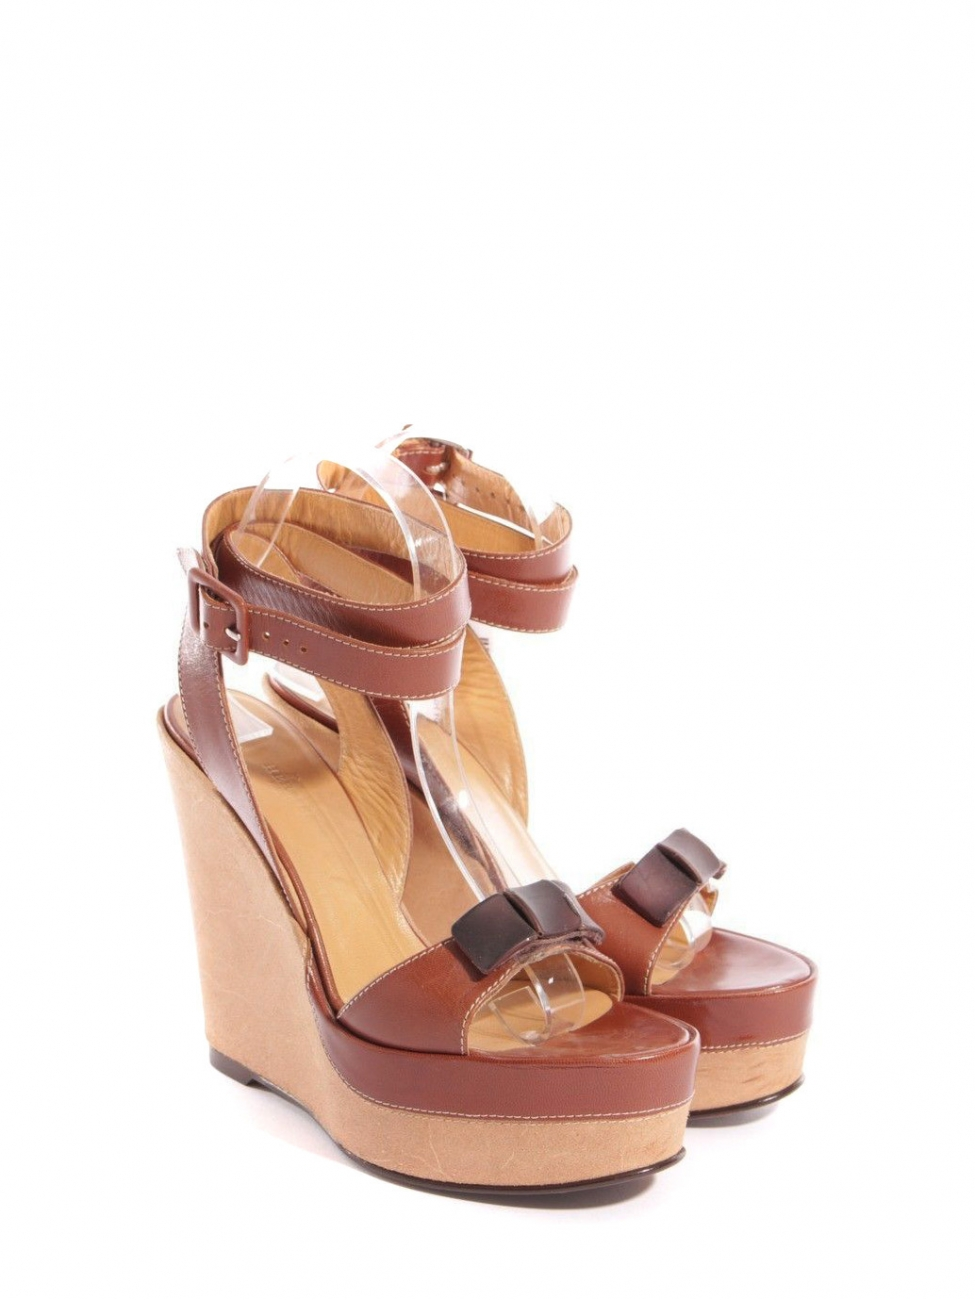 11eed4ecfc16 Louise Paris - HERMES Beige and brown leather wedge sandals Retail ...